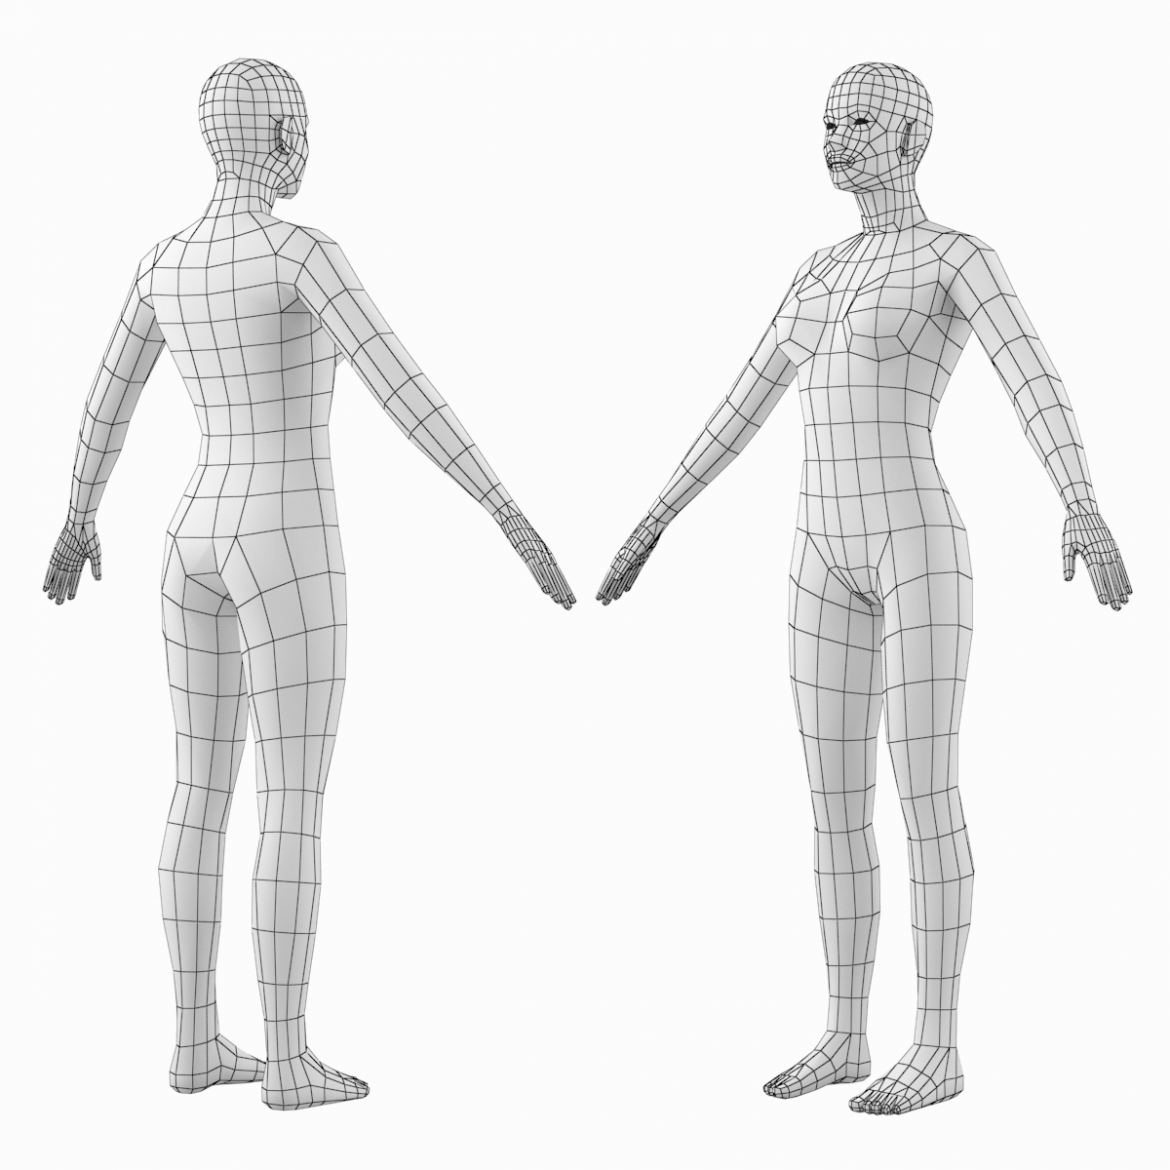 female base mesh natural proportions in a-pose 3d model 3ds max dxf dwg fbx c4d dae ma mb  obj 301363